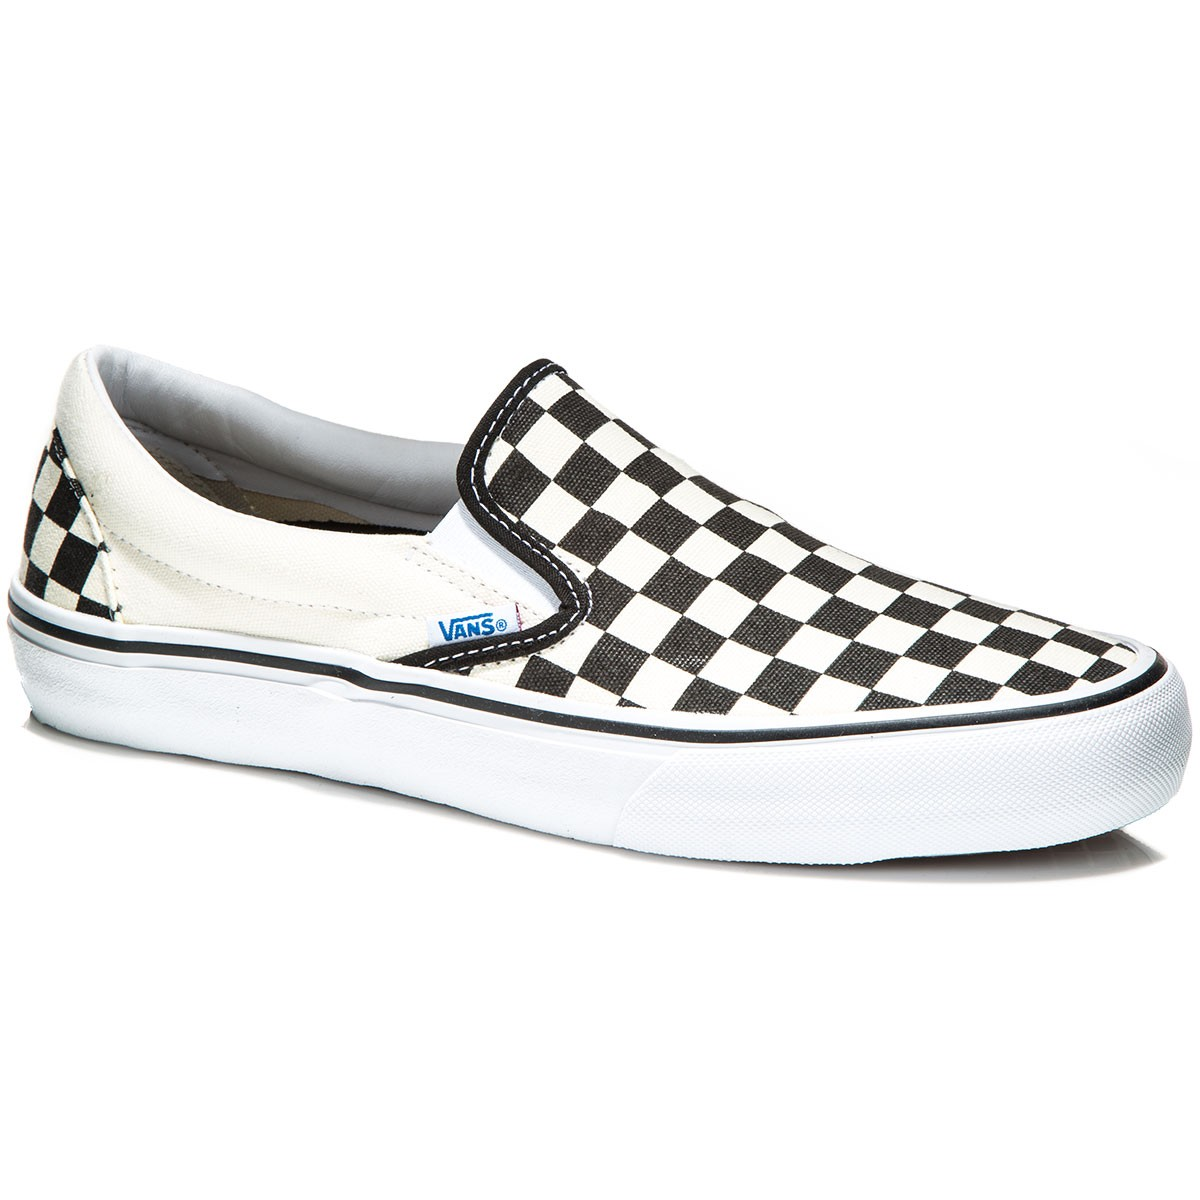 0fcc686dceb Vans Slip-On Pro Shoes